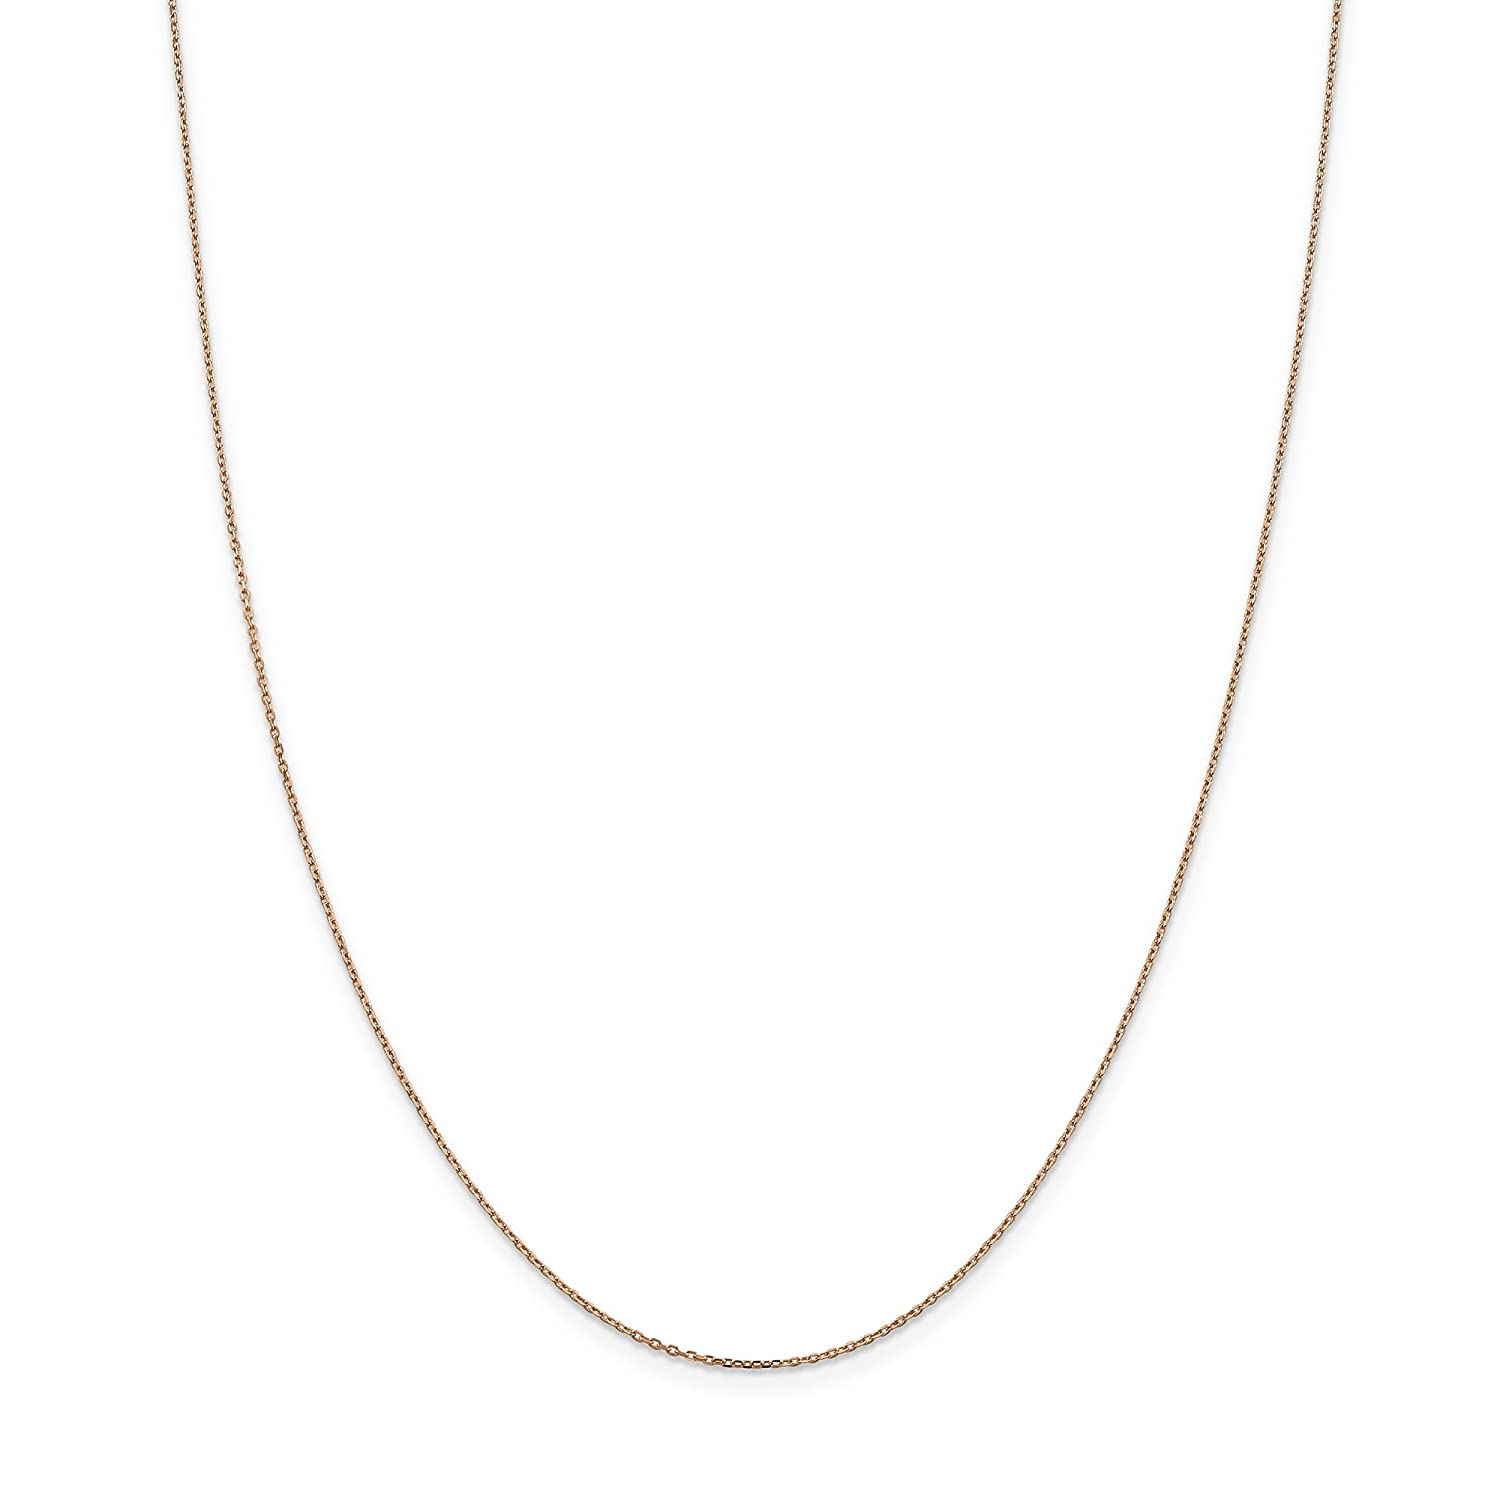 14k Rose Gold 1.0mm Cable Chain Necklace 16inch